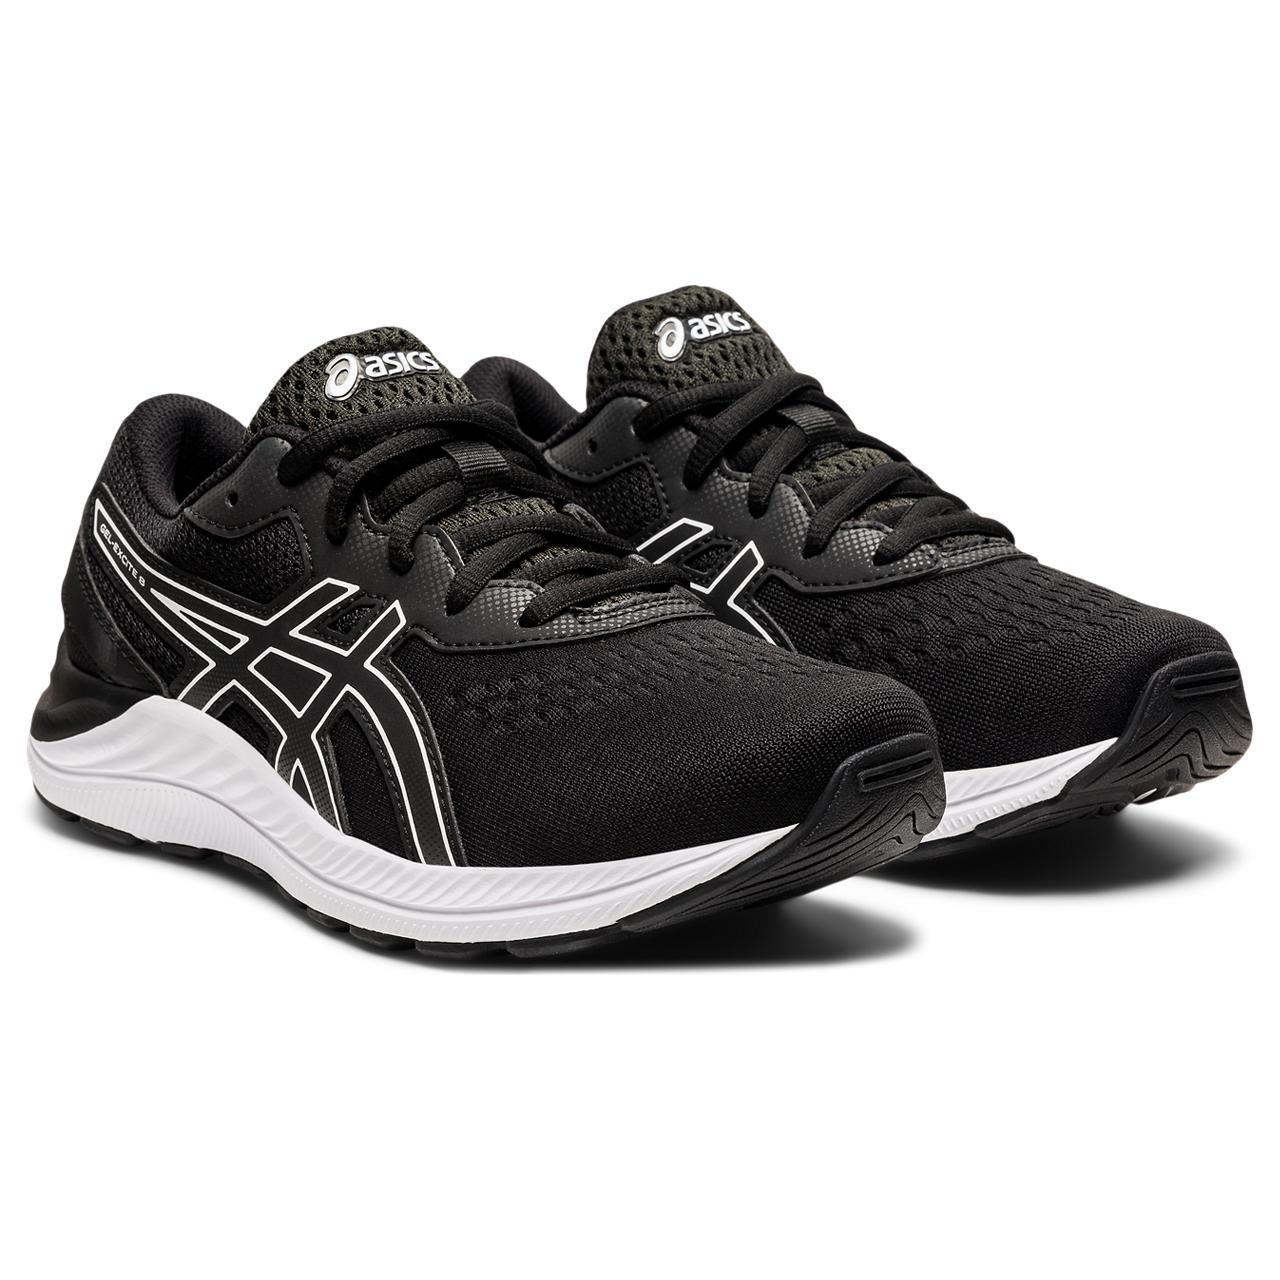 'ASICS' Youth Gel Excite 8 - Black / White